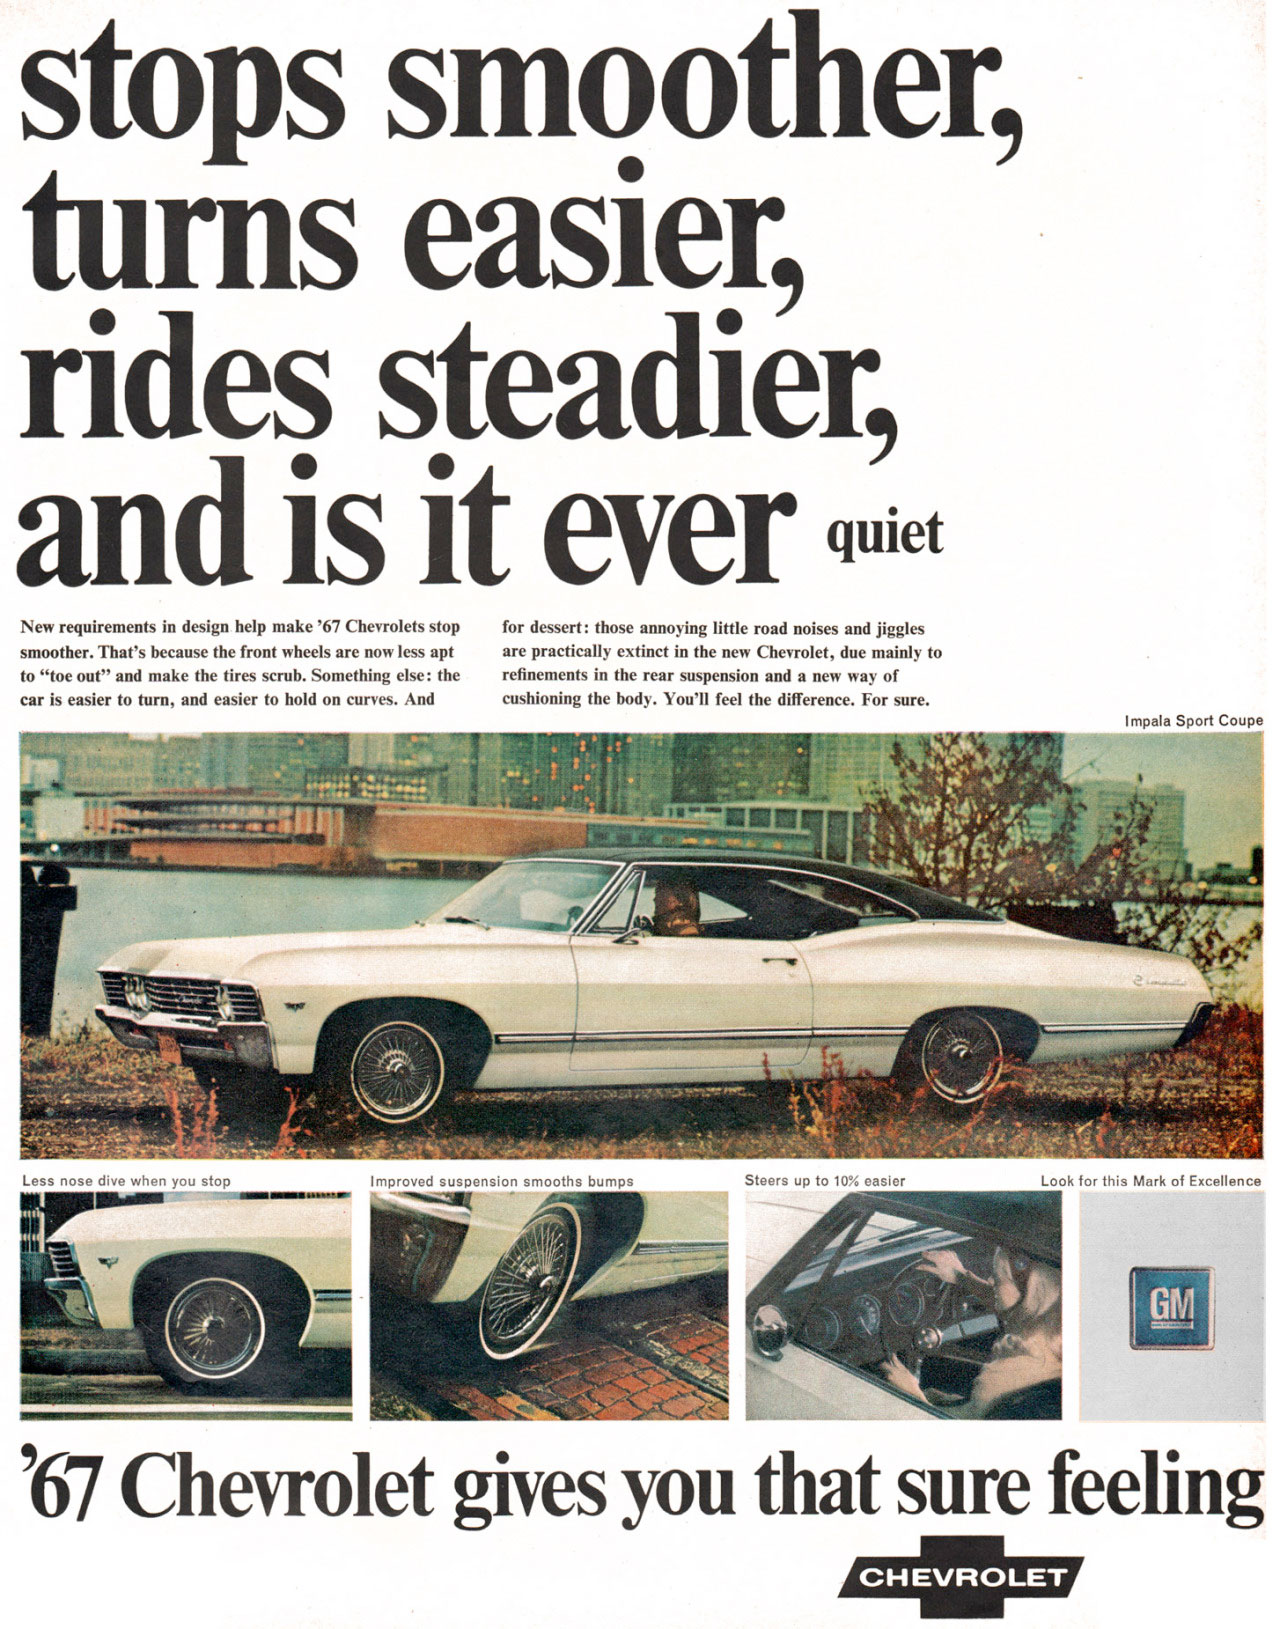 stops smoother, turns easier, rides steadier, and is it ever quiet  New requirements in design help make '67 Chevrolets stop for dessert: those annoying little road noises and jiggles smoother. That's because the front wheels are now less apt are practically extinct in the new Chevrolet, due mainly to to ''toe out'' and make the tires scrub. Something else: the refinements in the rear suspension and a new way of car is easier to turn, and easier to hold on curves. And cushioning the body. You'll feel the difference. For sure.   GIV1   '67 Chevrolet Impala Sport Coupé gives you that sure feeling